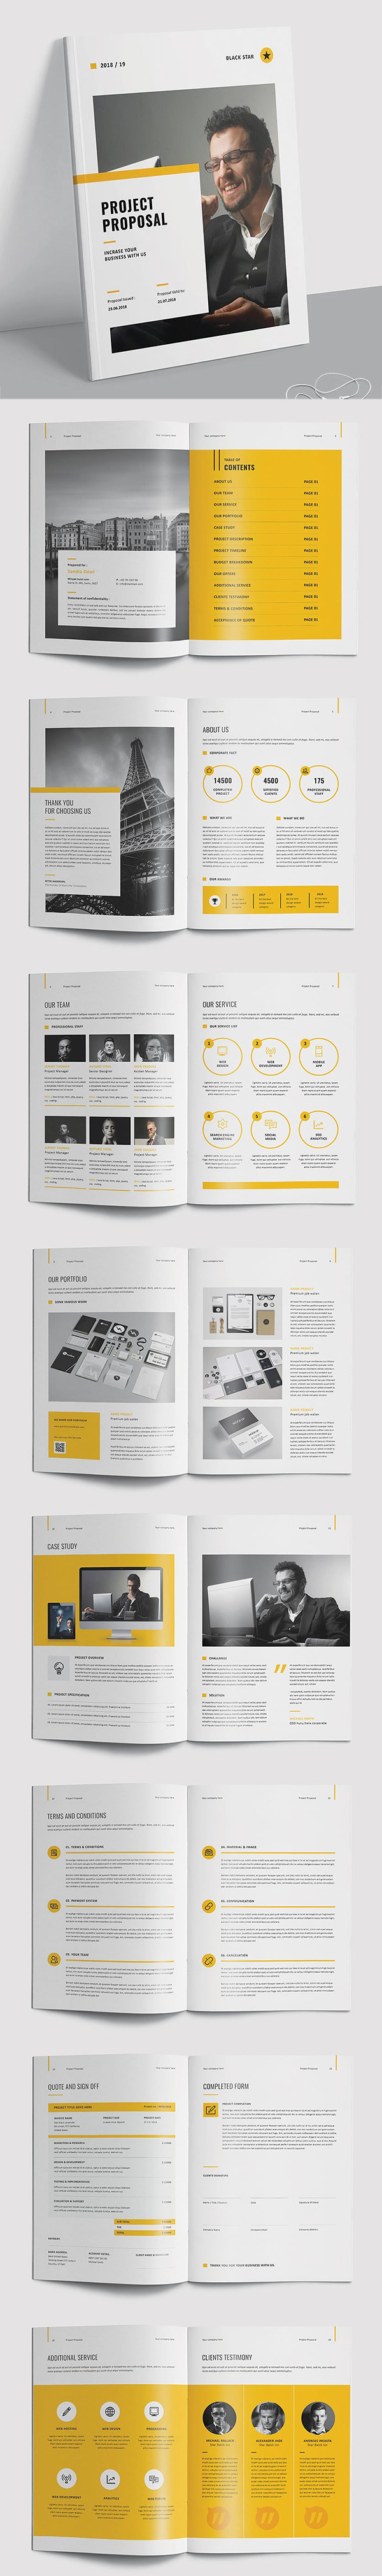 100 Professional Corporate Brochure Templates - 80